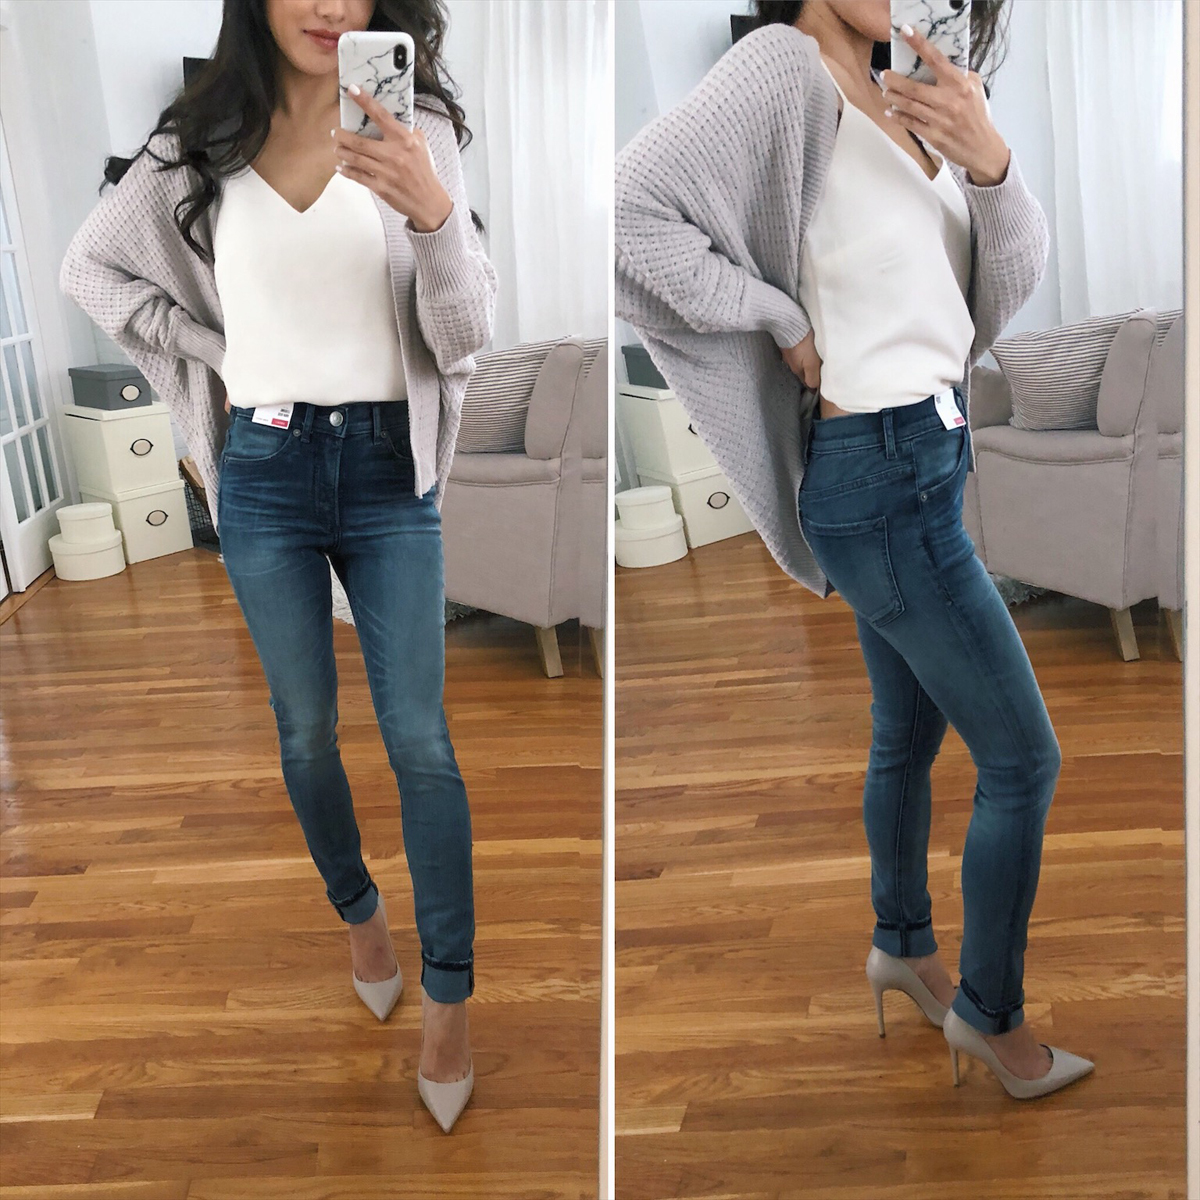 to wear - Skinny Best jeans for petites video